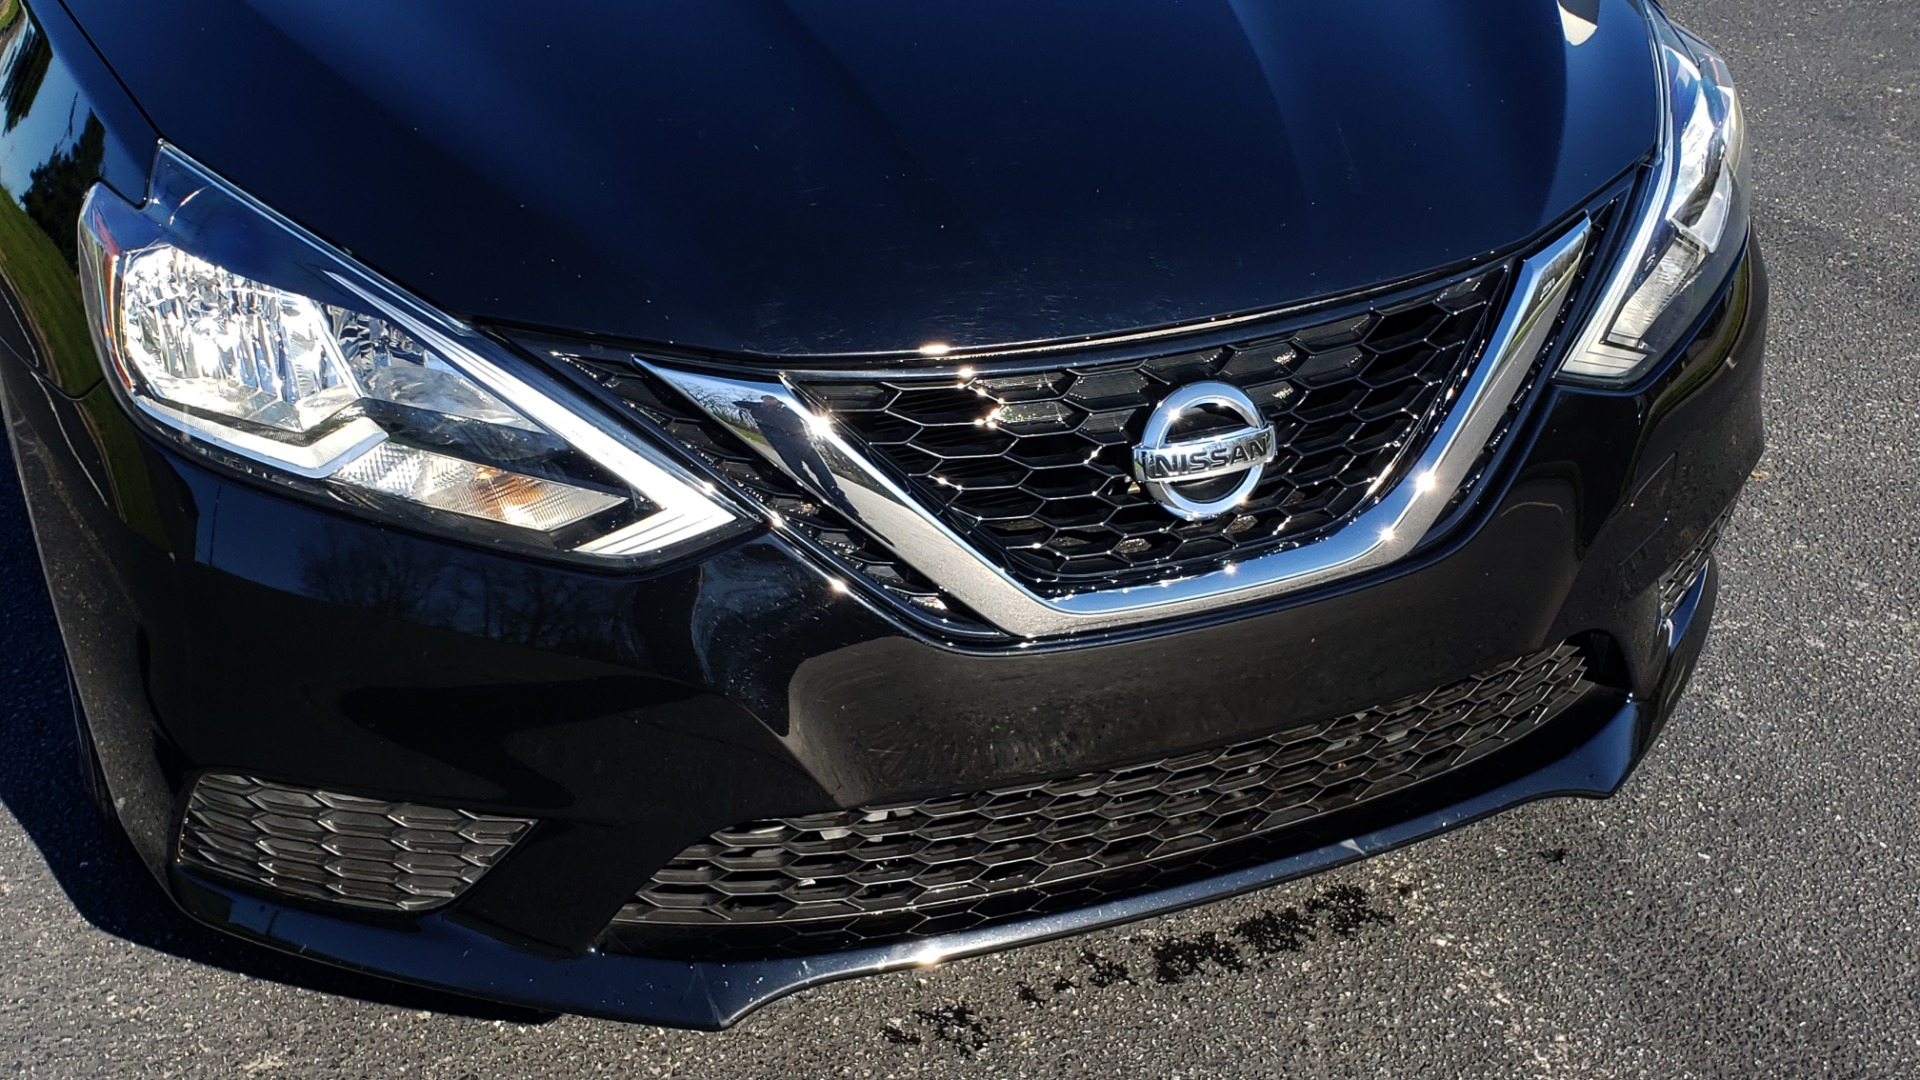 Used 2016 Nissan SENTRA S / FWD / CVT AUTO TRANS / 4-CYL / VERY CLEAN! for sale Sold at Formula Imports in Charlotte NC 28227 23